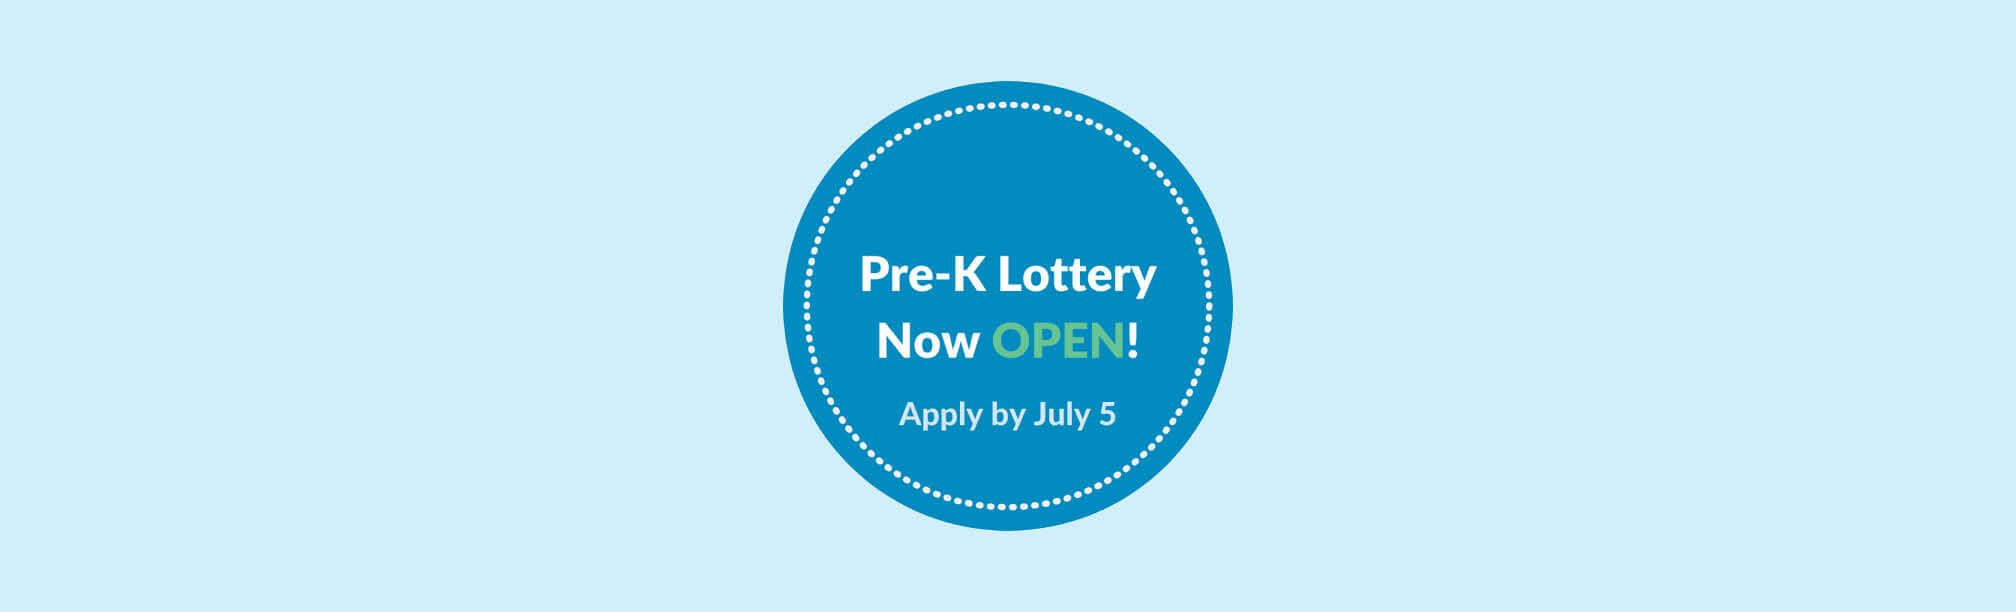 2020-2021 RI State Pre-K Lottery is Open at Dr. Day Care